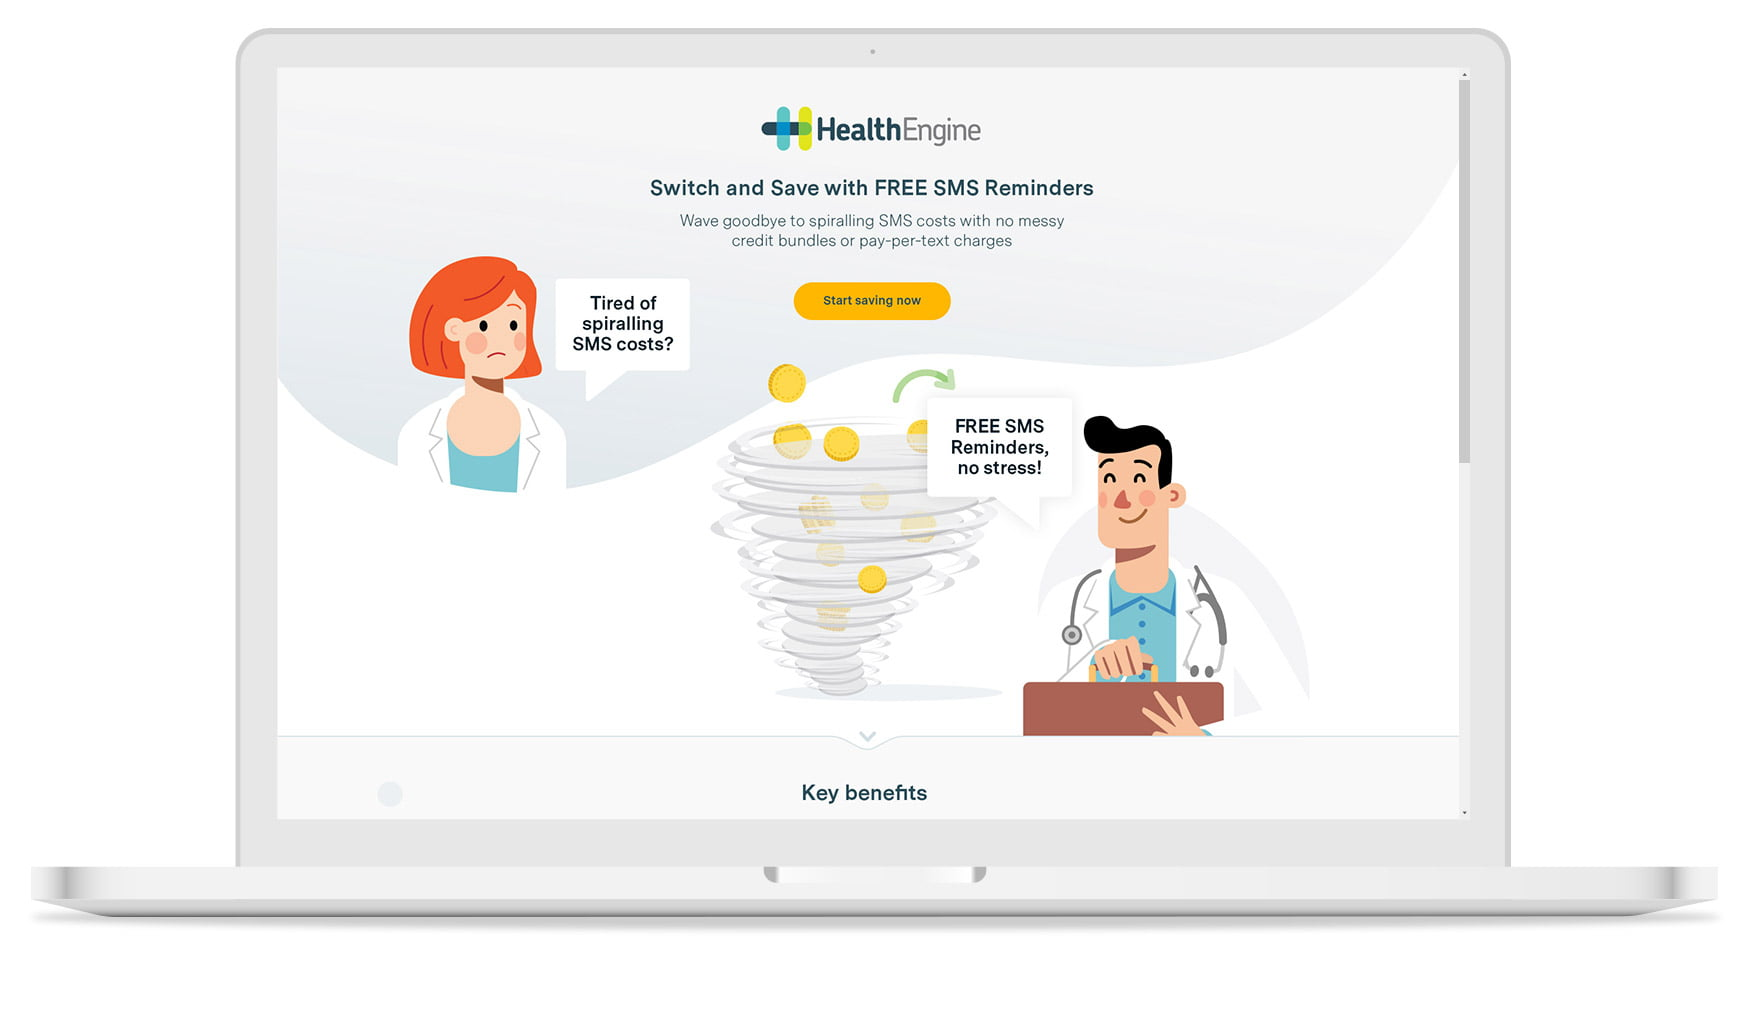 healthengine-website-mockup2